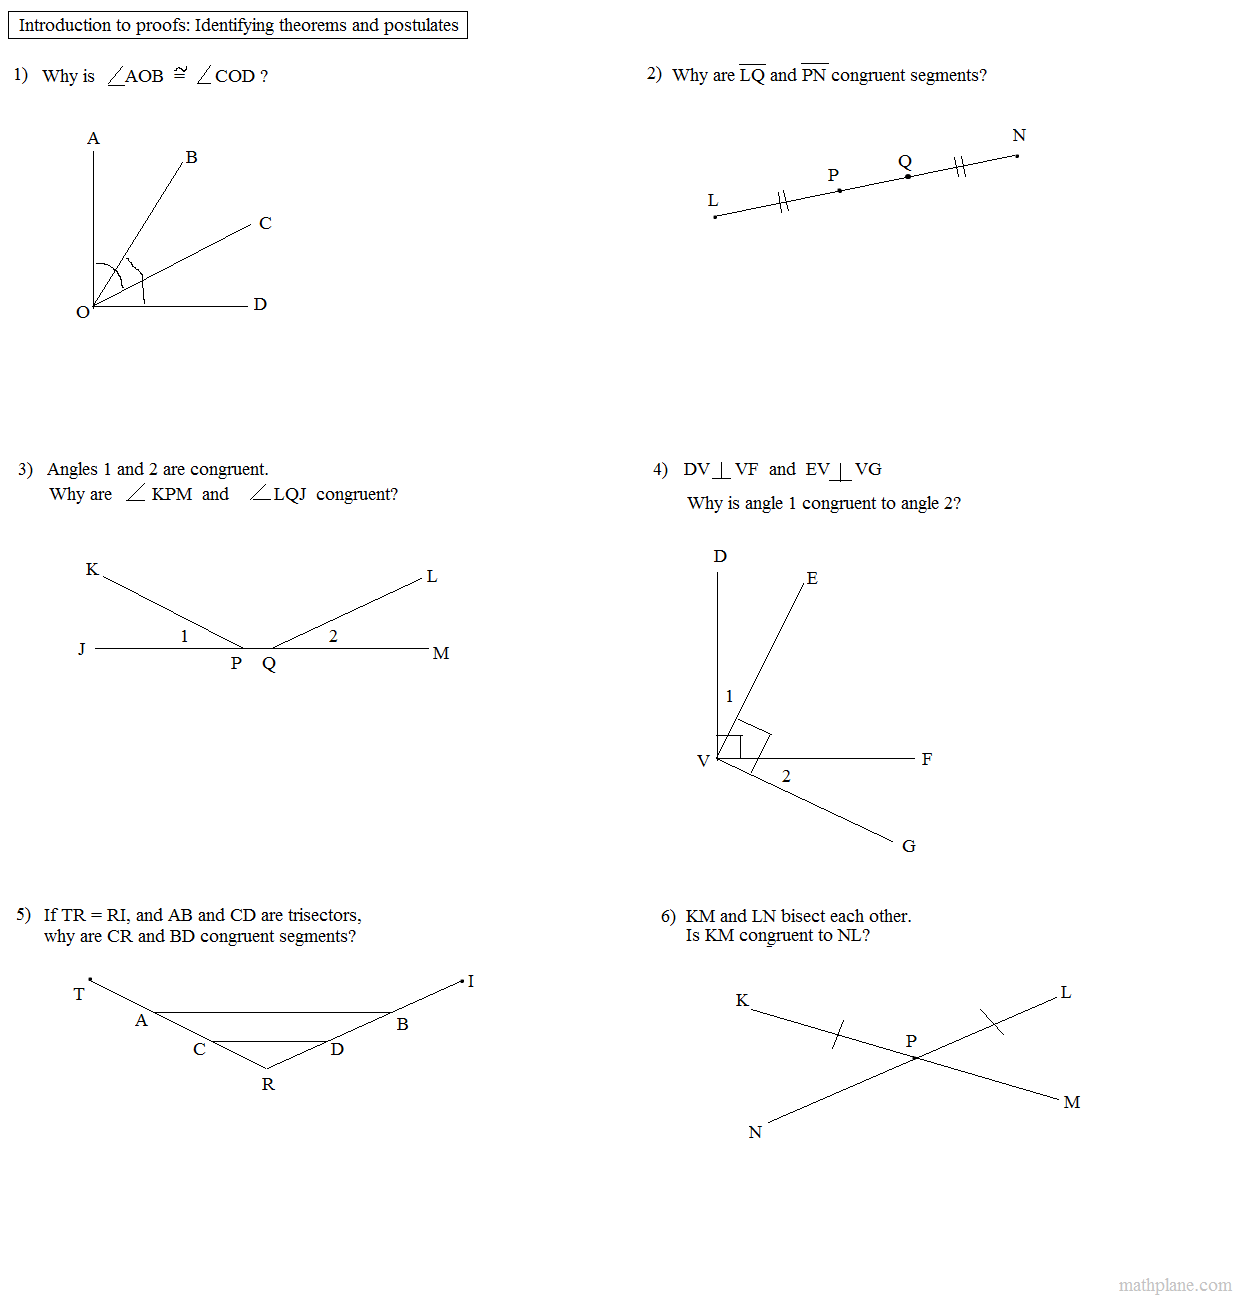 Worksheet Geometry Proofs Worksheets math plane proofs postulates 1 worksheet geometry and reasoning exercises